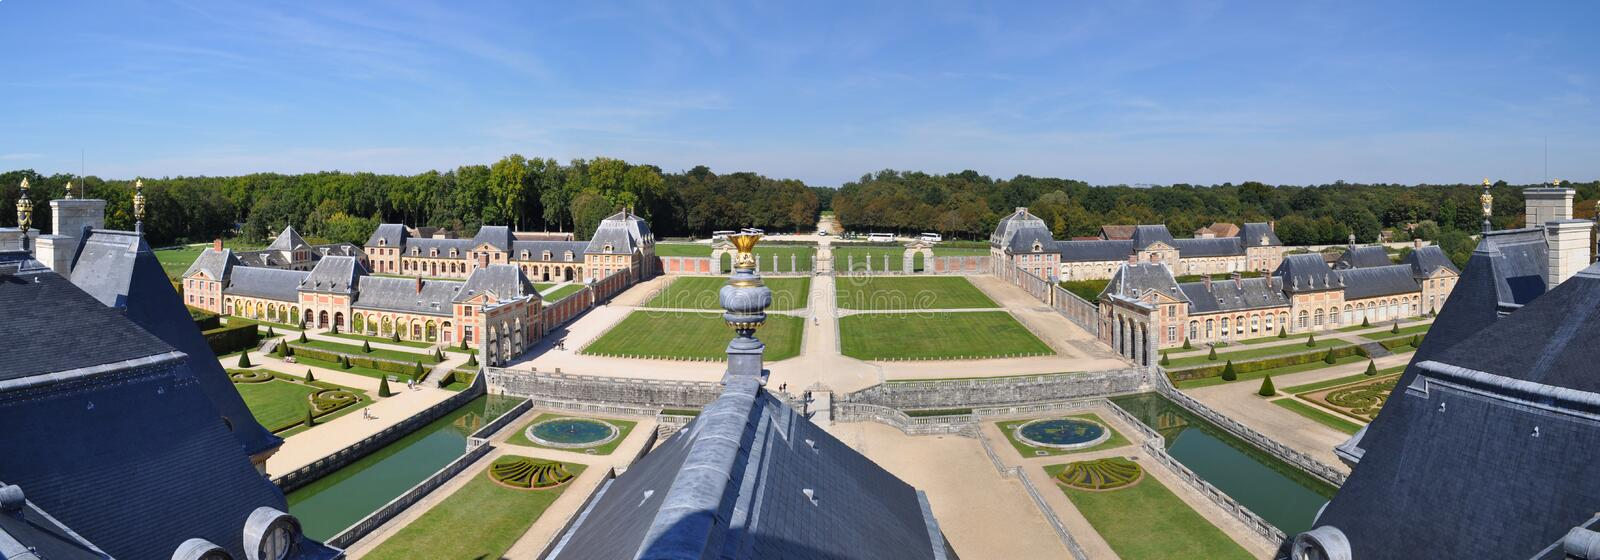 Vaux Le Vicomte. Travel across Europe, Château de Vaux-le-Vicomte, panoramic view from the top of the castle, France stock images